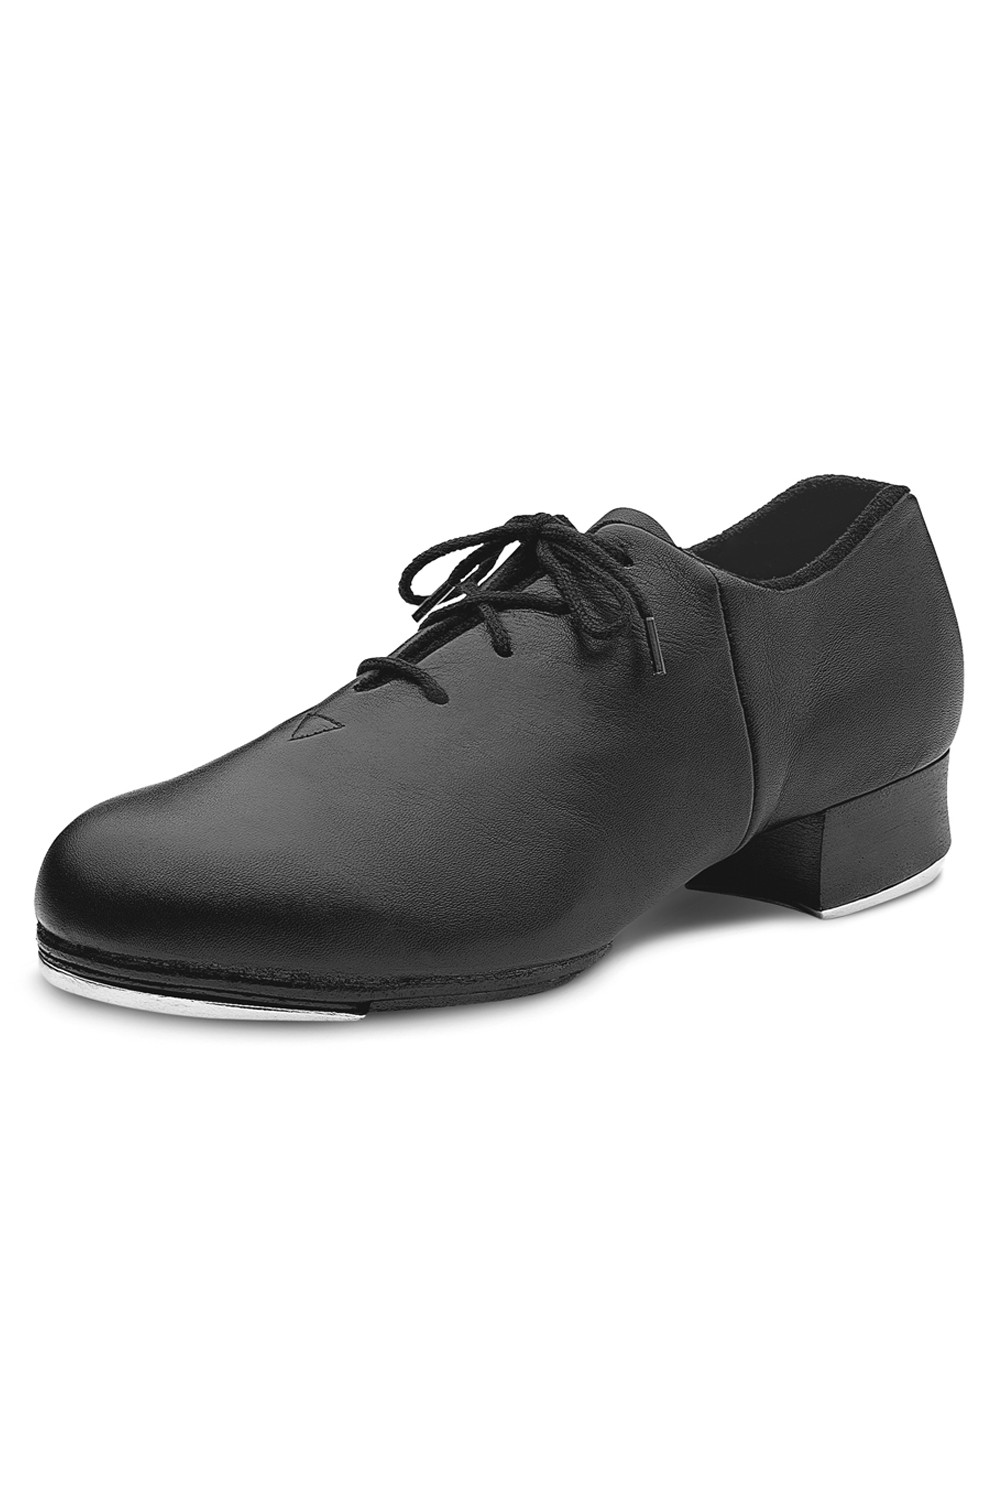 Tap-flex - Herren Men's Tap Shoes